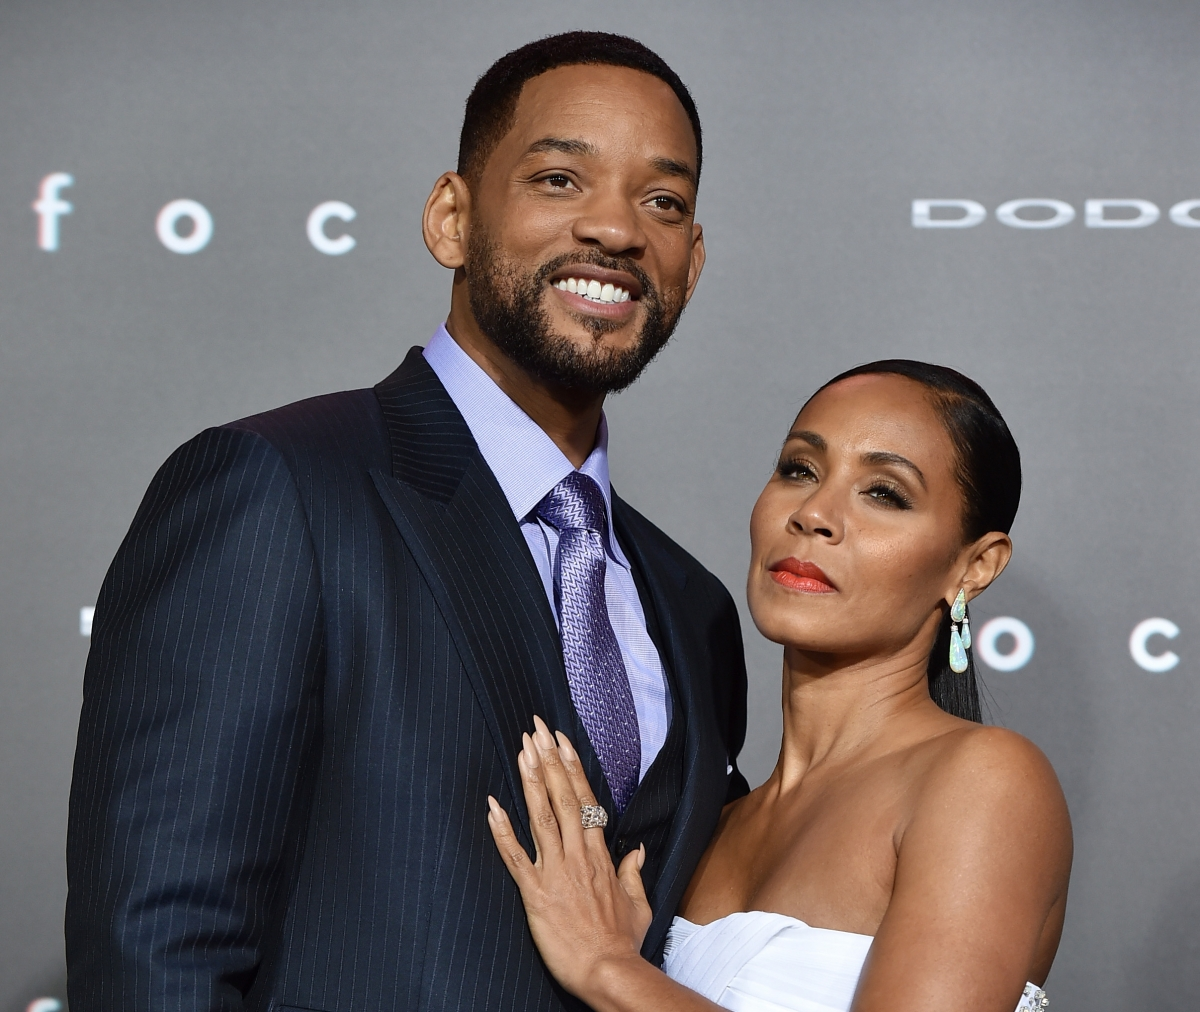 Oscars 2016: Jada Pinkett Smith hints at boycotting ...